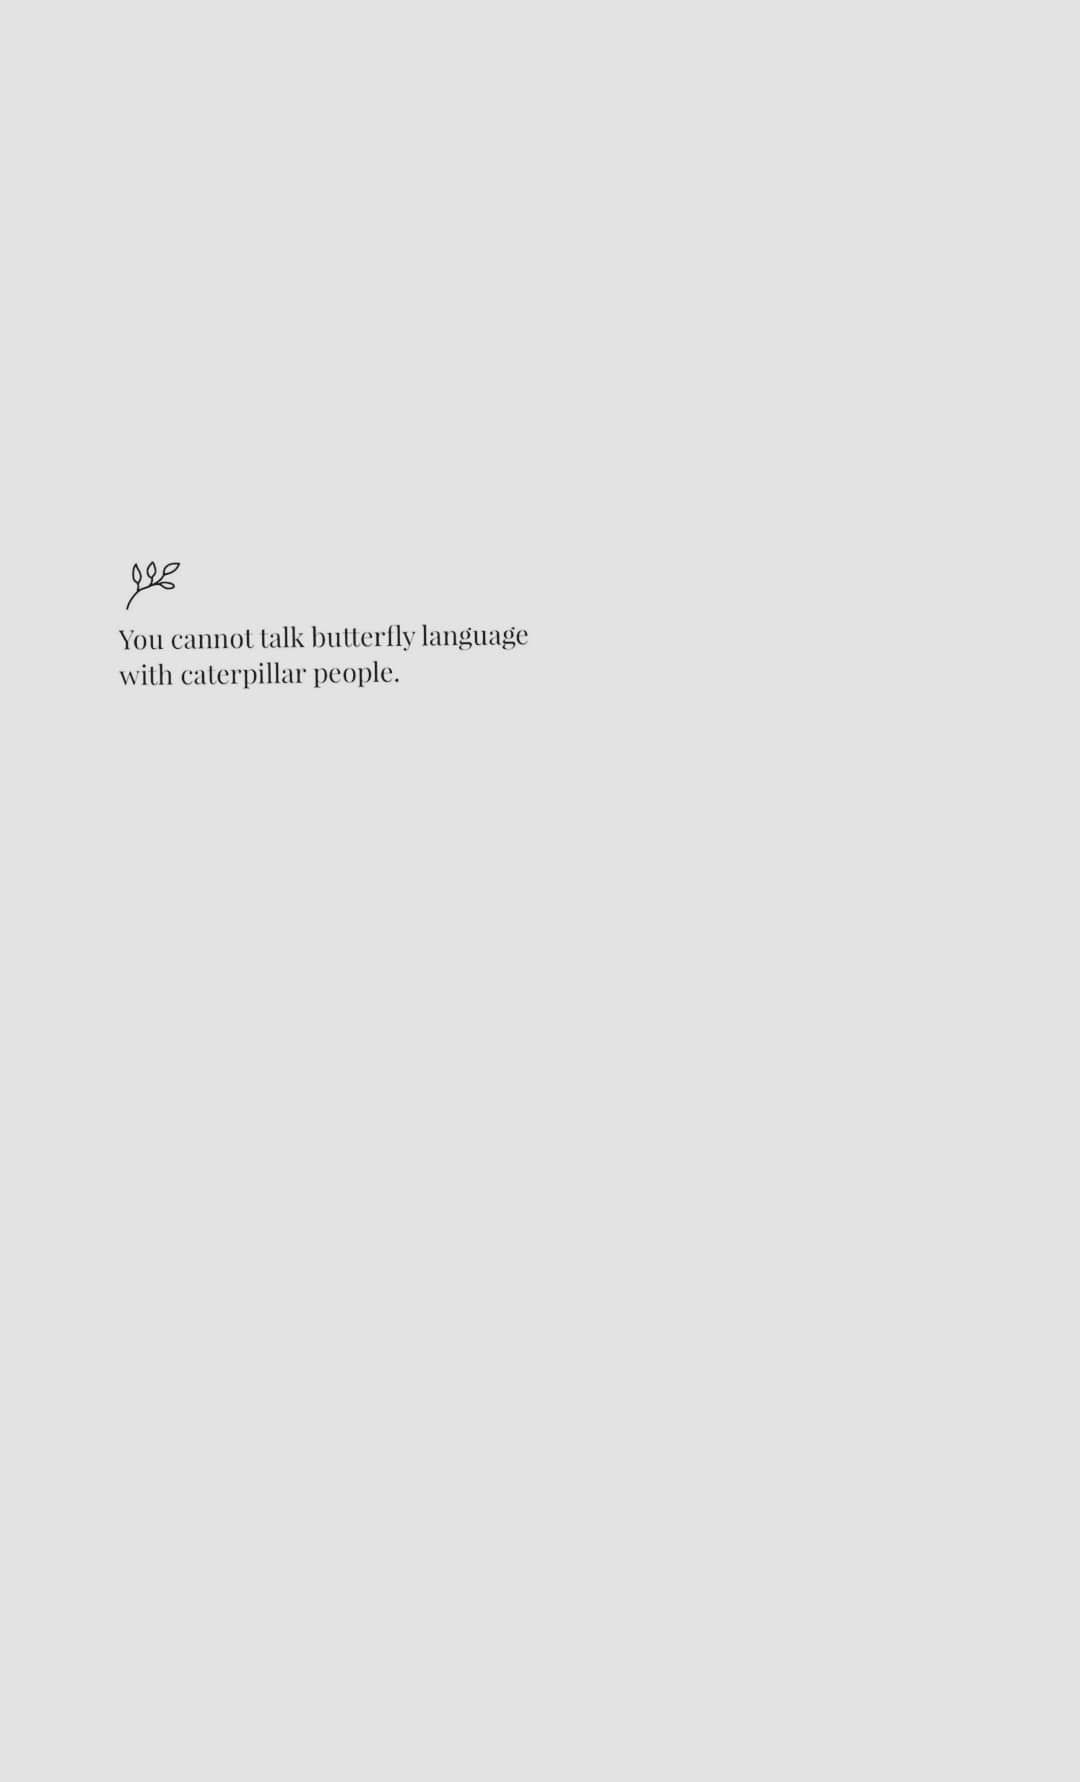 Quotes | Awe inspiring quotes, Witty love quotes ...